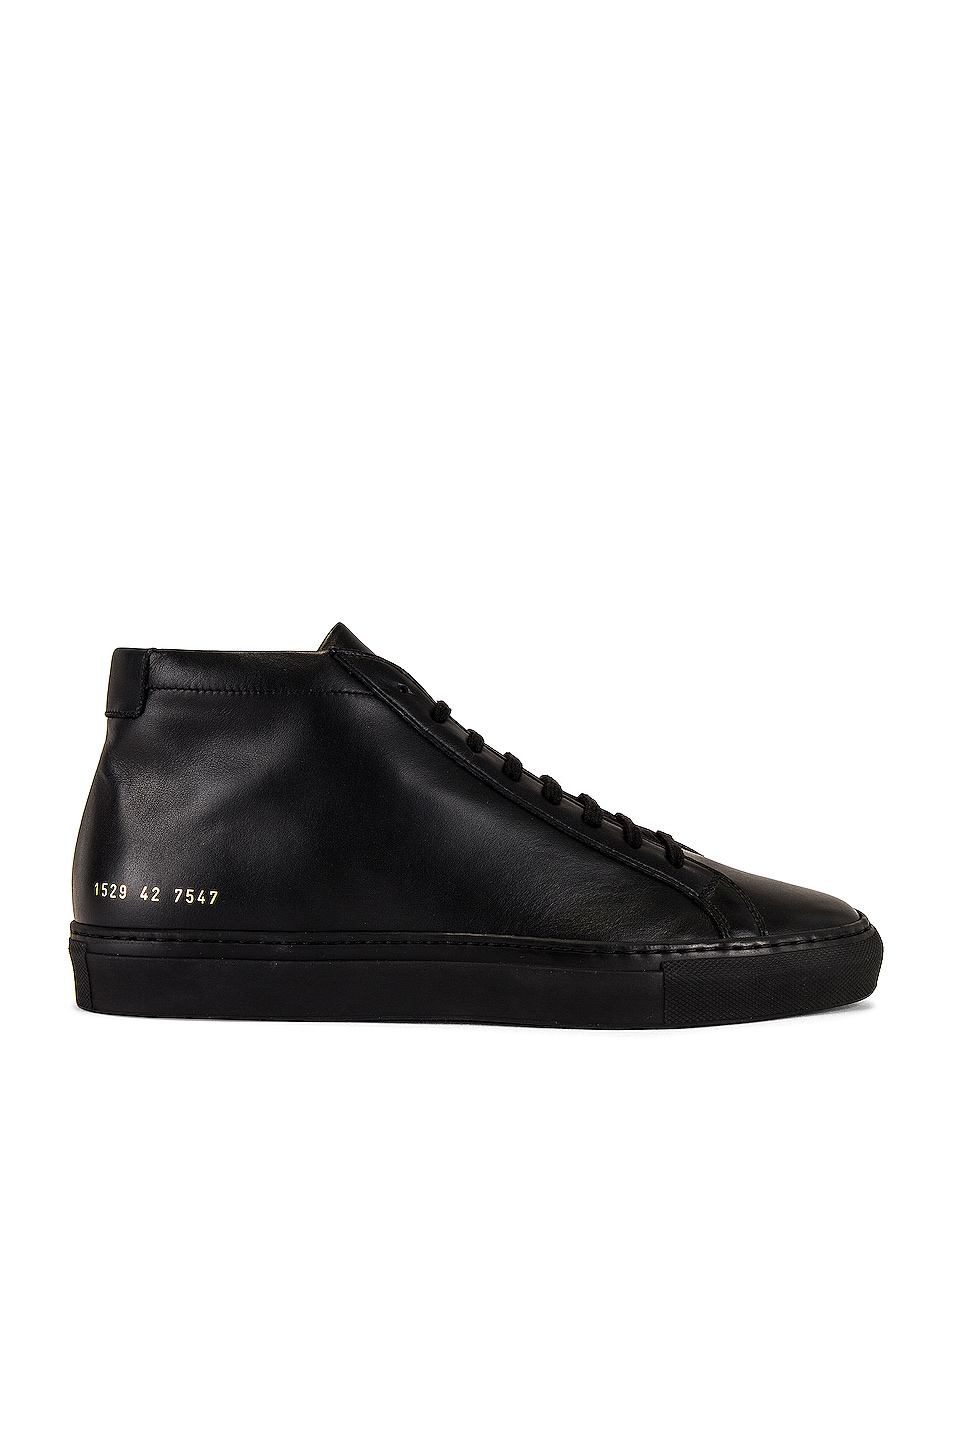 Image 1 of Common Projects Original Leather Achilles Mid in Black